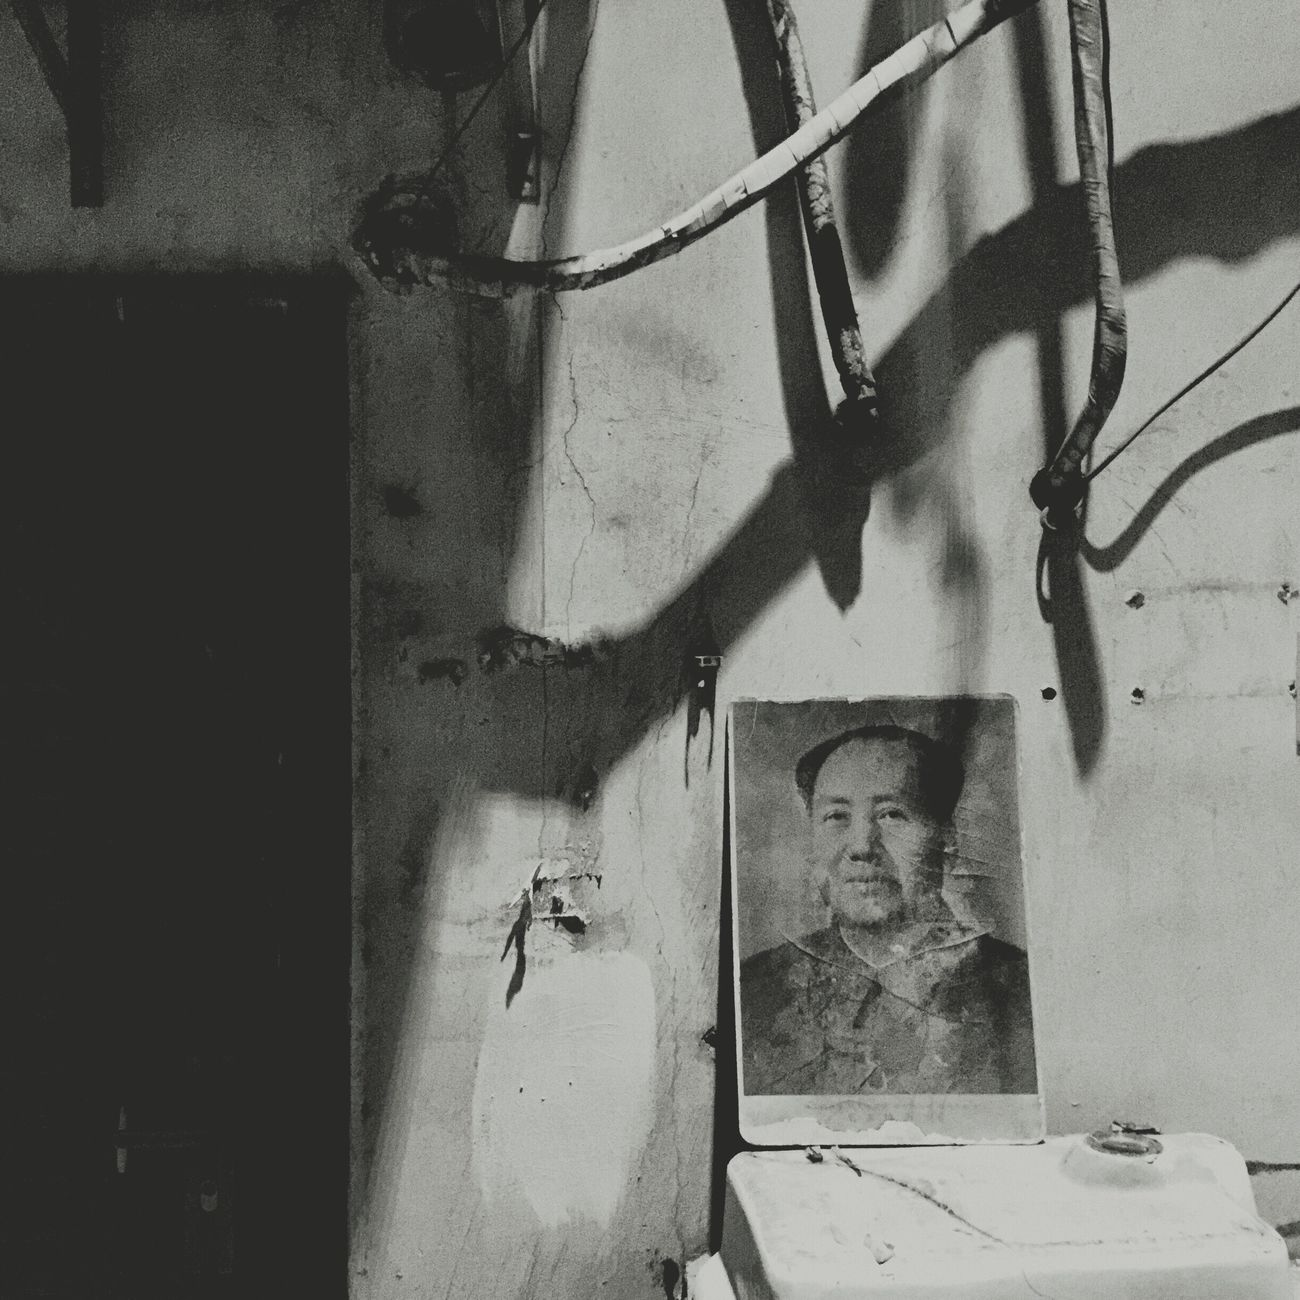 Demolition Stories Demolition Zone Urban Geometry Beauty Of Decay Destruction Hutong Black And White Photography Black And White Blackandwhite Urban Decay Shanghai Mao Tse Tung